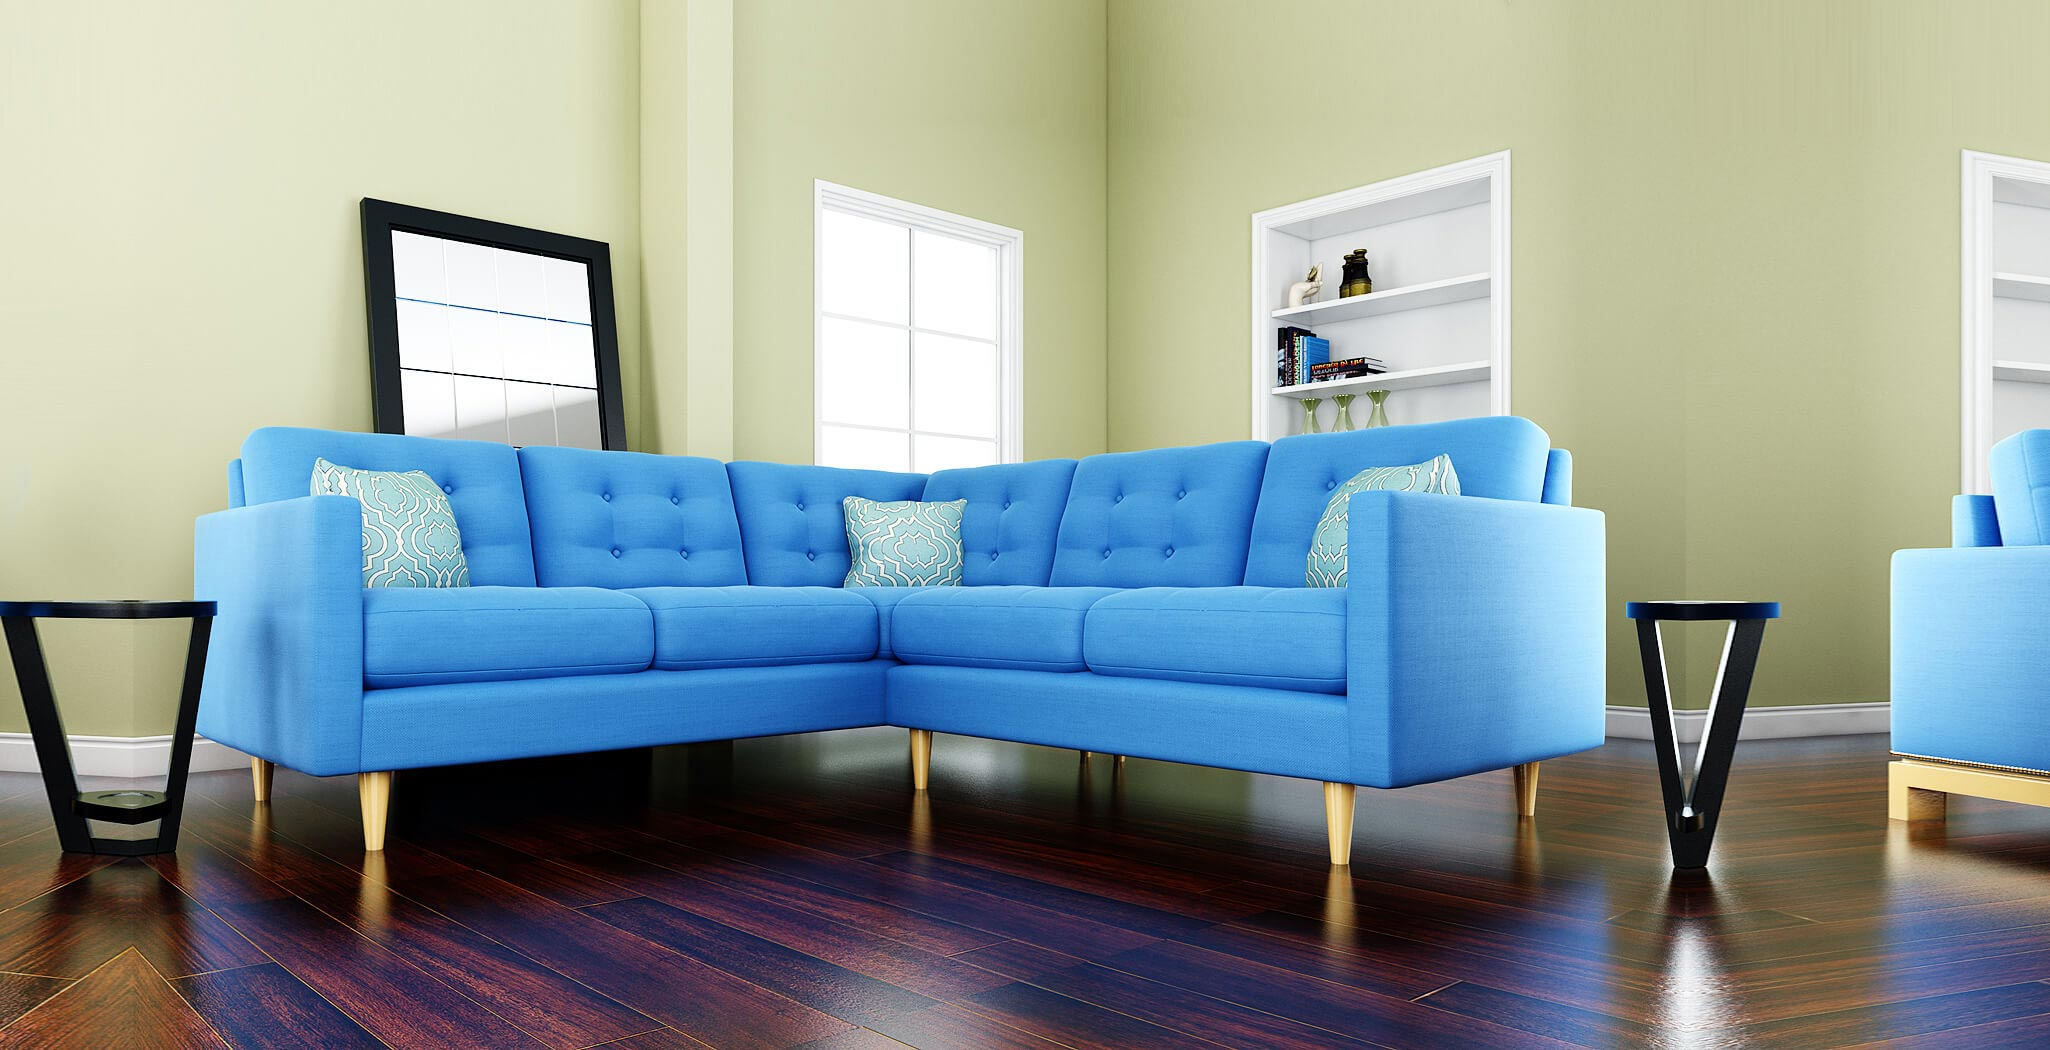 oslo sectional furniture gallery 2